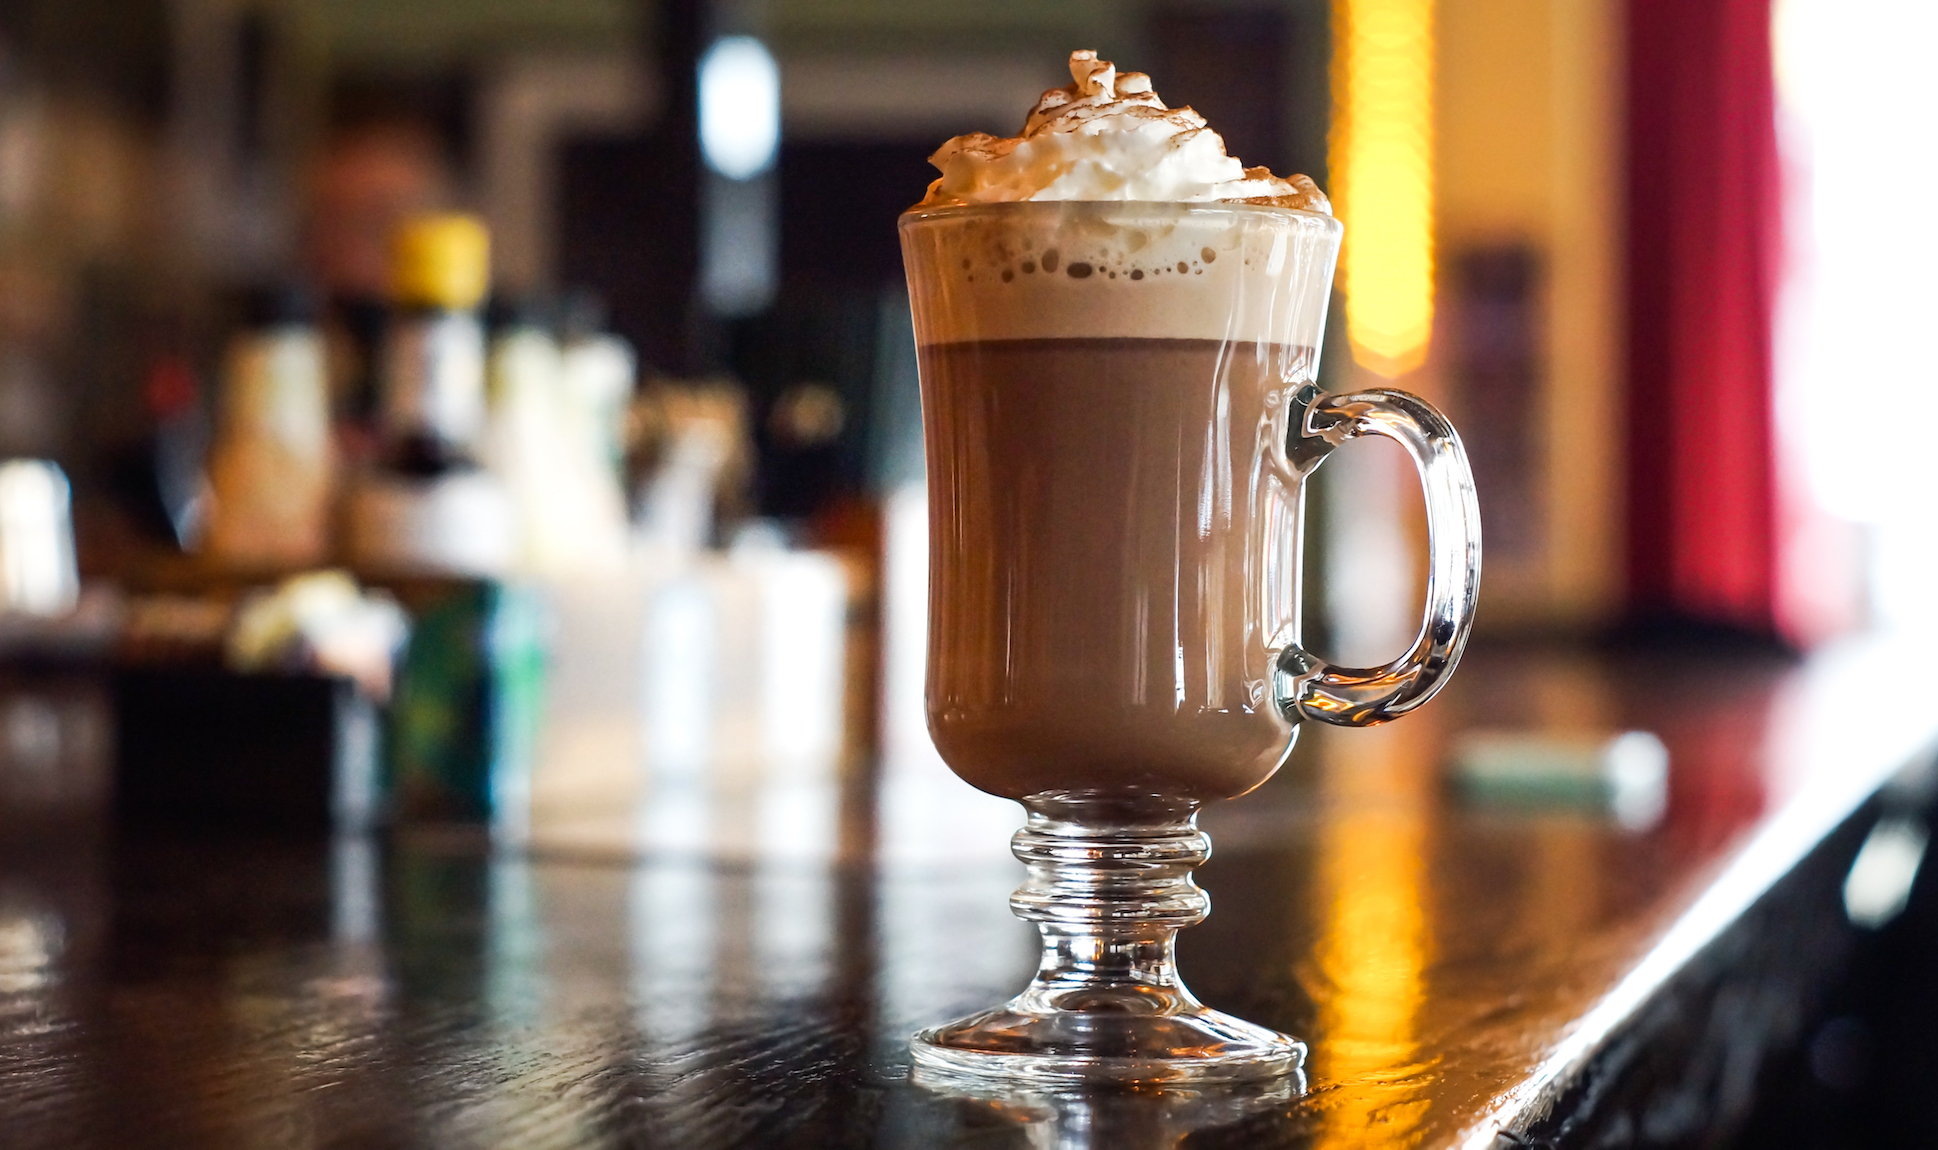 MilkBoy Hot Chocolate